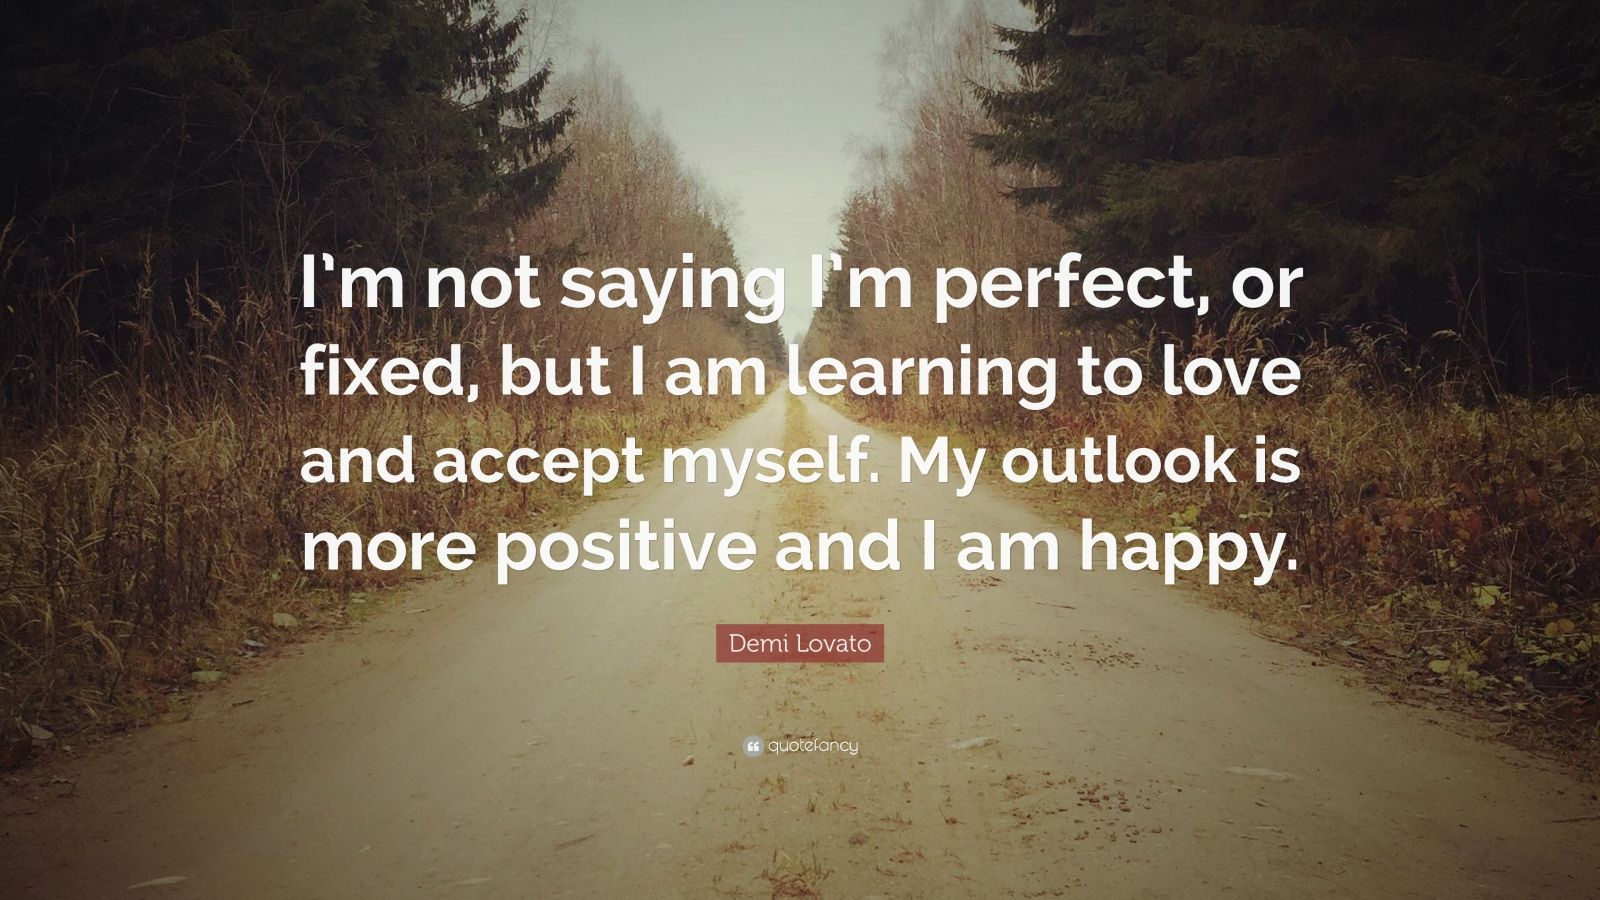 "Demi Lovato Quote: ""I'm not saying I'm perfect, or fixed, but I am learning to love and accept myself. My outlook is more positive and I am happy."""